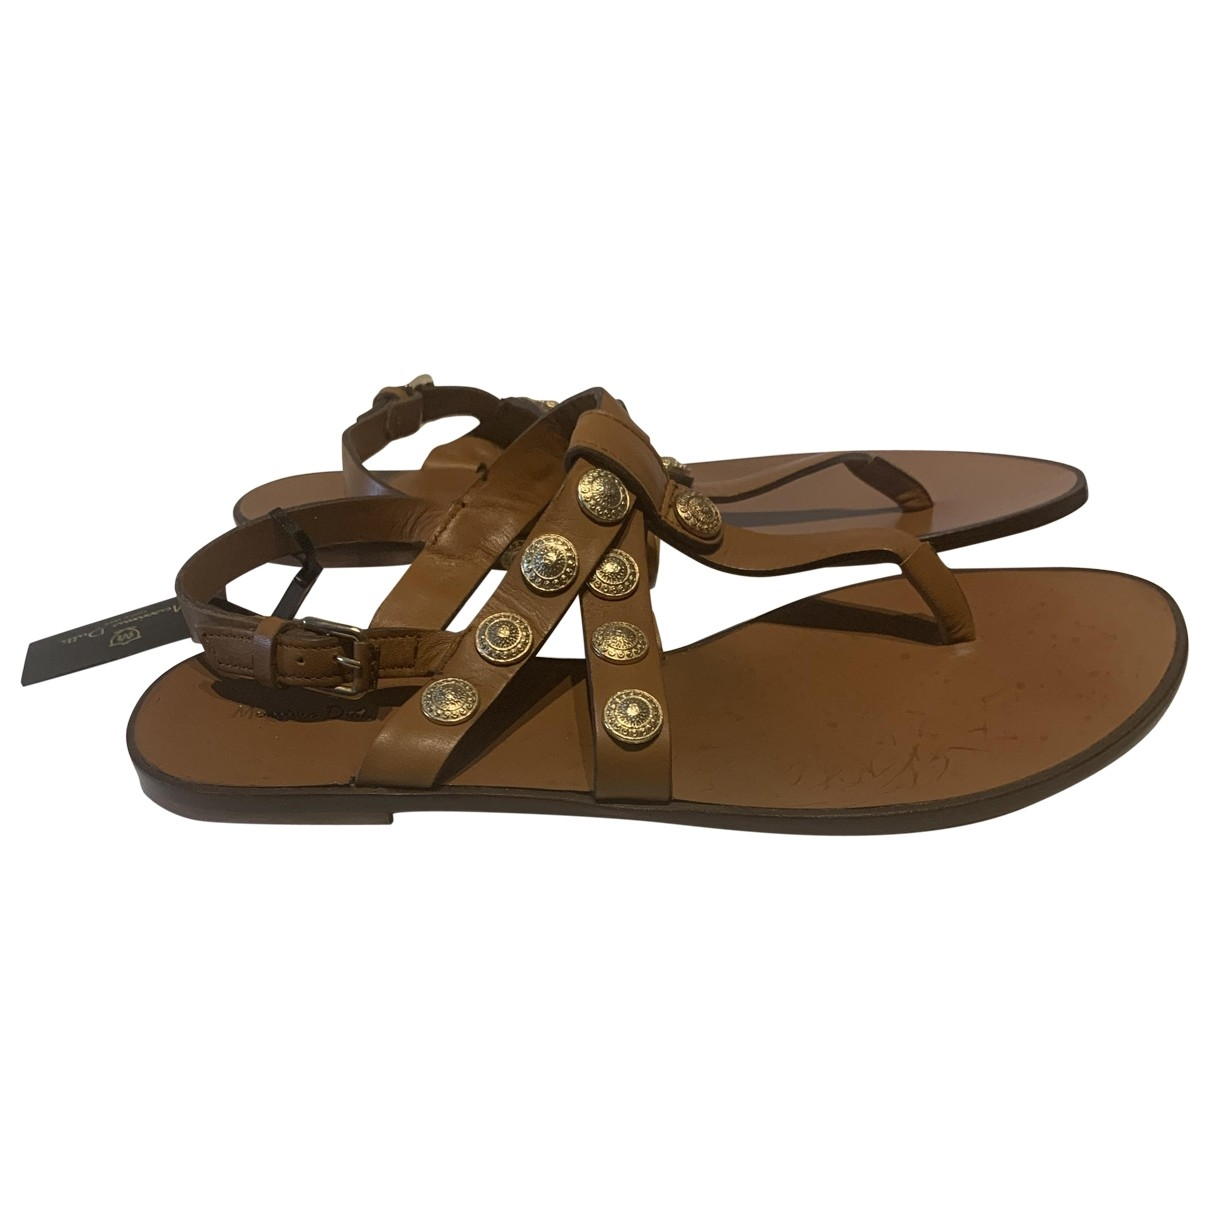 Massimo Dutti \N Brown Leather Sandals for Women 39 EU